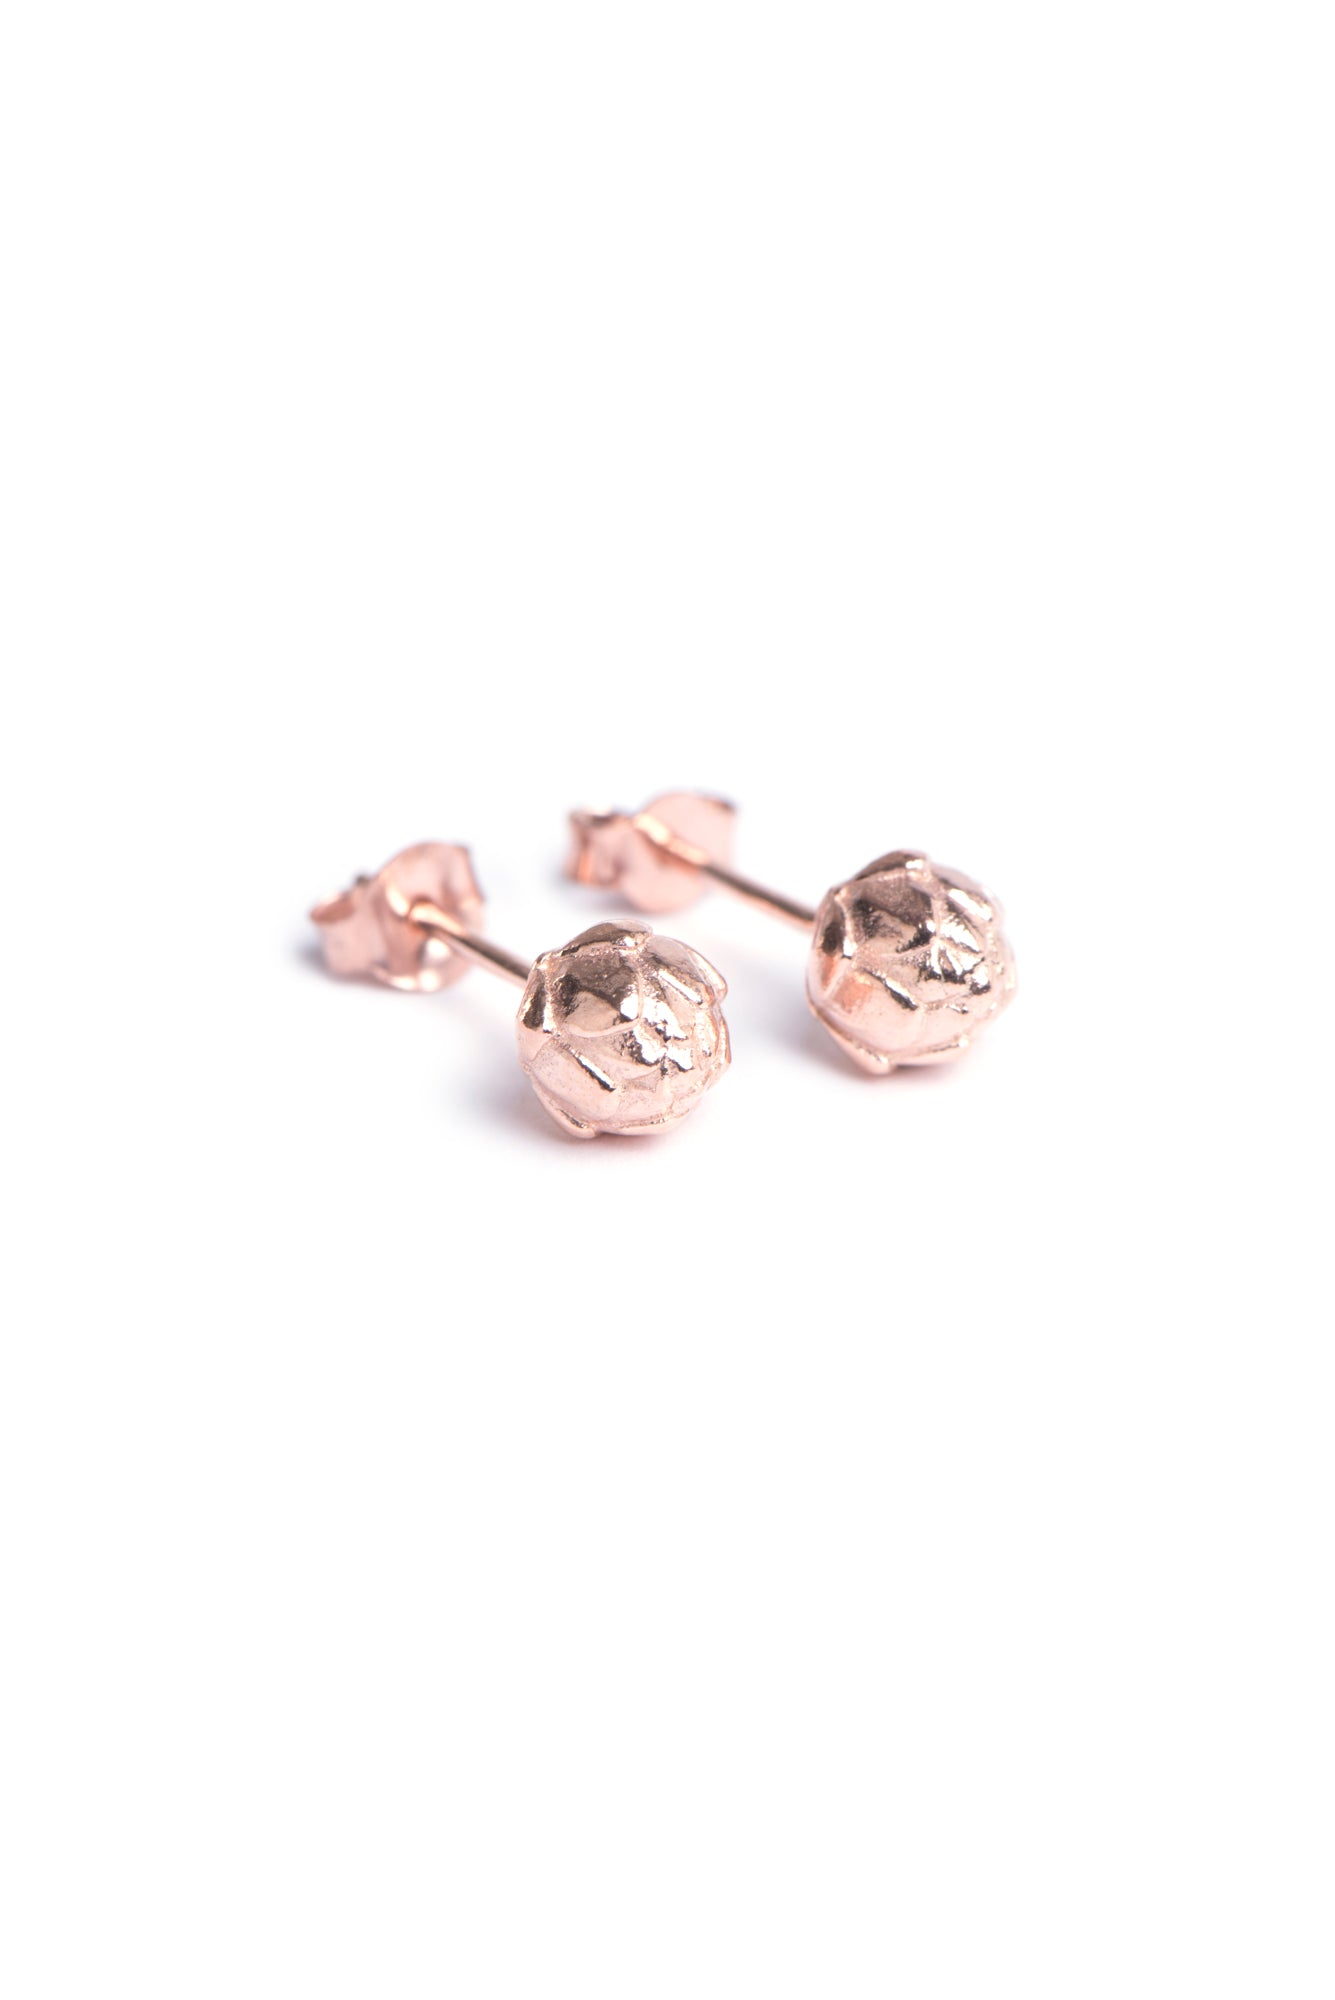 Protea Pod Studs in Rose Gold